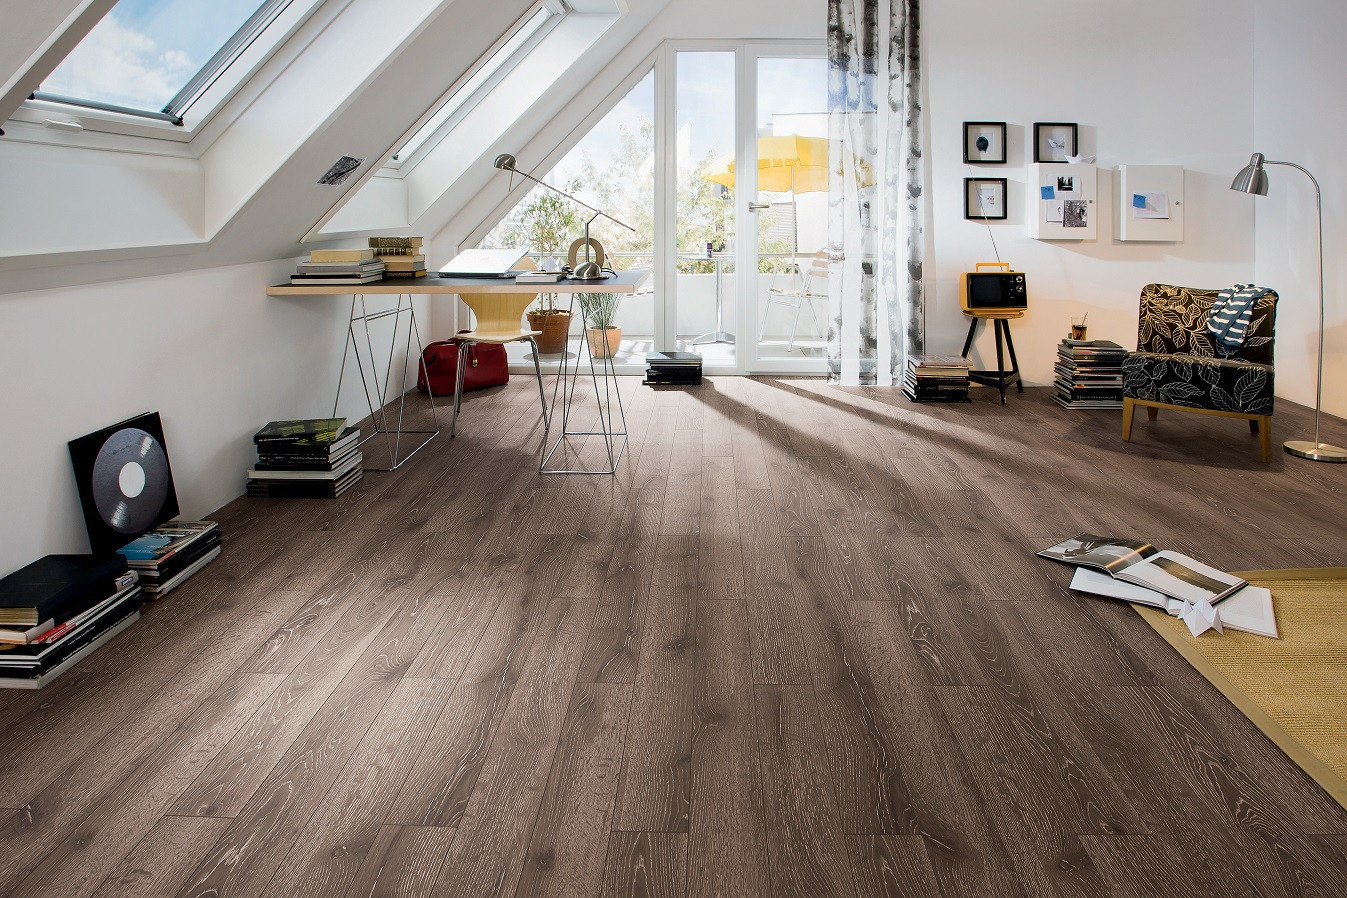 Hardwood Flooring Prices and Installation Of Ca Laminate Flooring California Wood Floor Boards San Jose Los Regarding Ca Best Place to Buy Hardwood Flooring